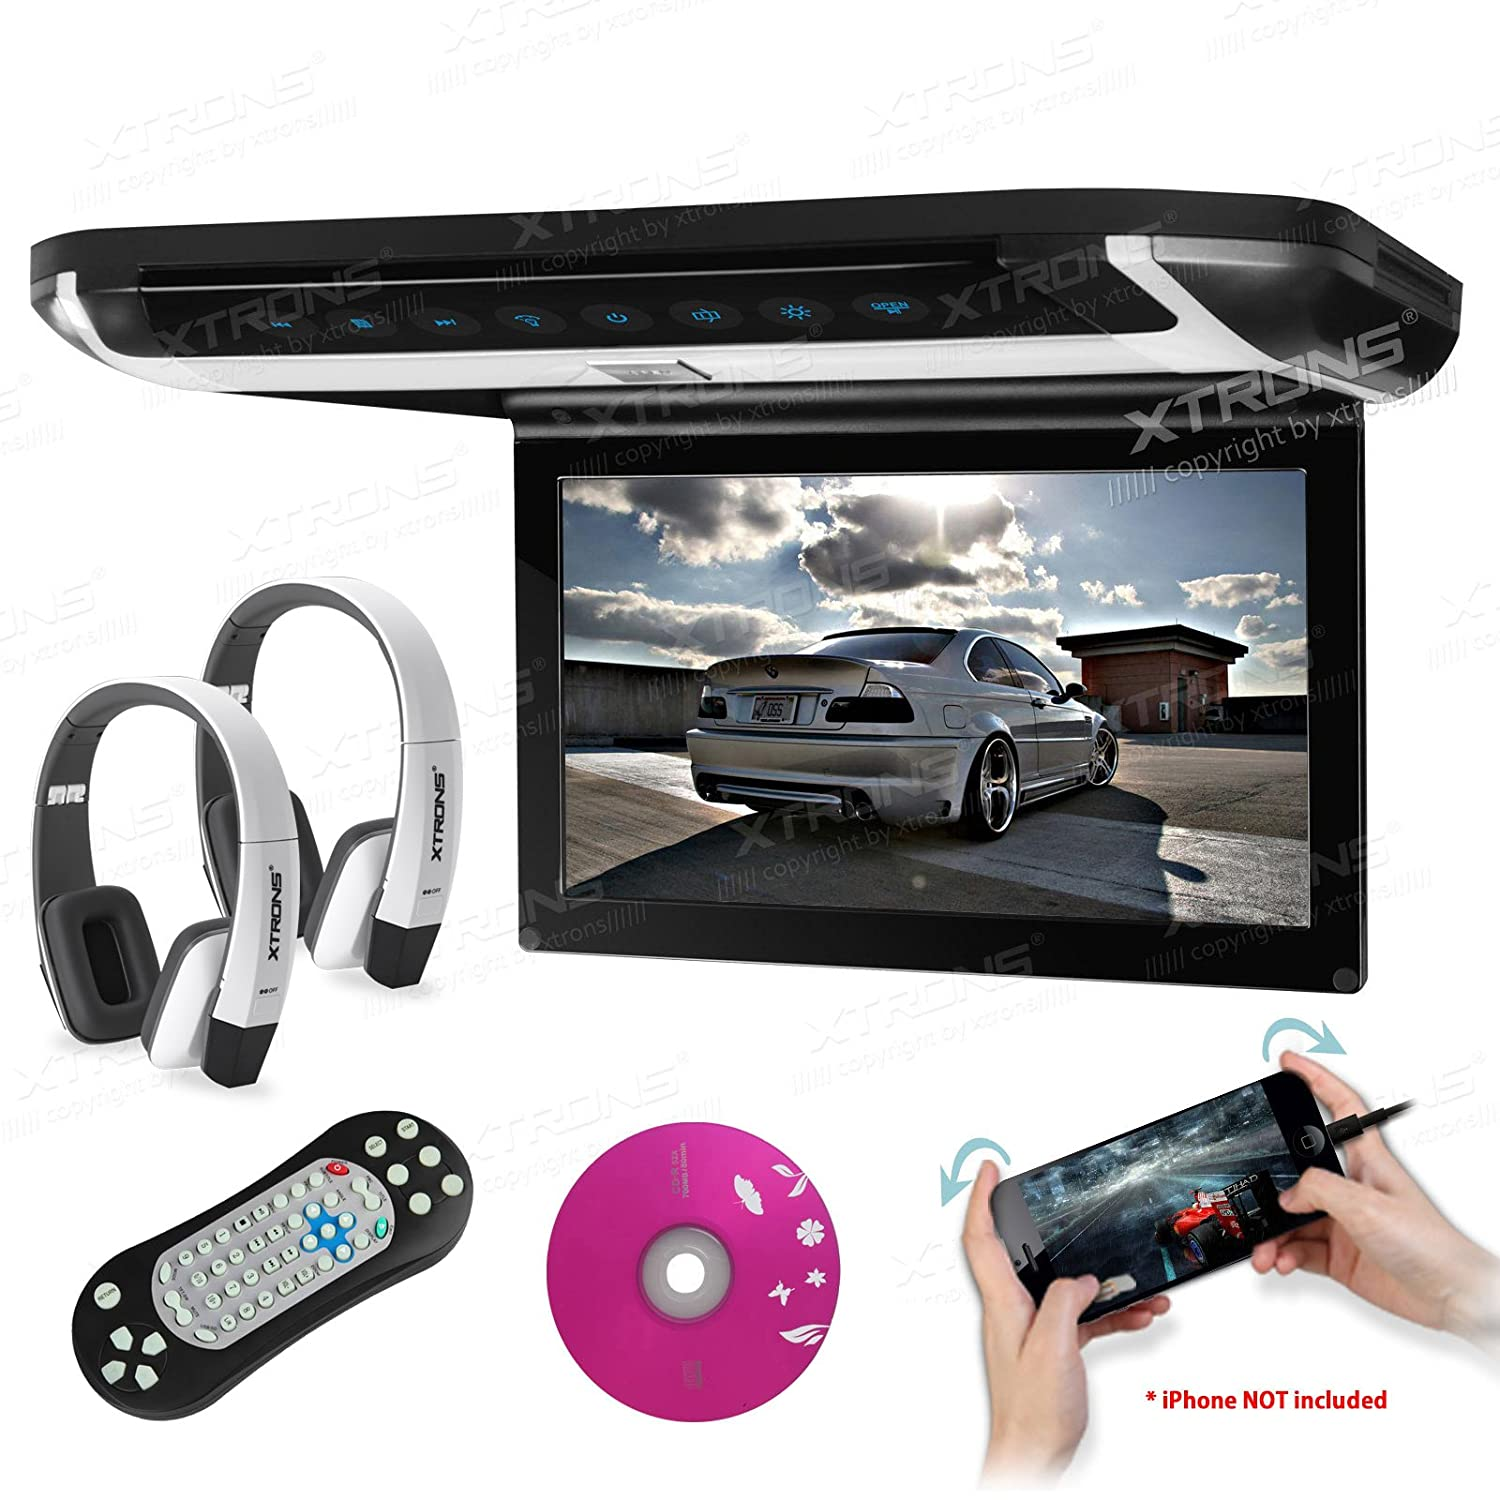 Xtrons 10 Hd Digital Tft Monitor Car Roof Flip Down Hippo Multi Adaptor Aero 3 Ports Usb Simple Pack Overhead Dvd Player Touch Panel Game Disc Hdmi Port White Ir Headphones Included